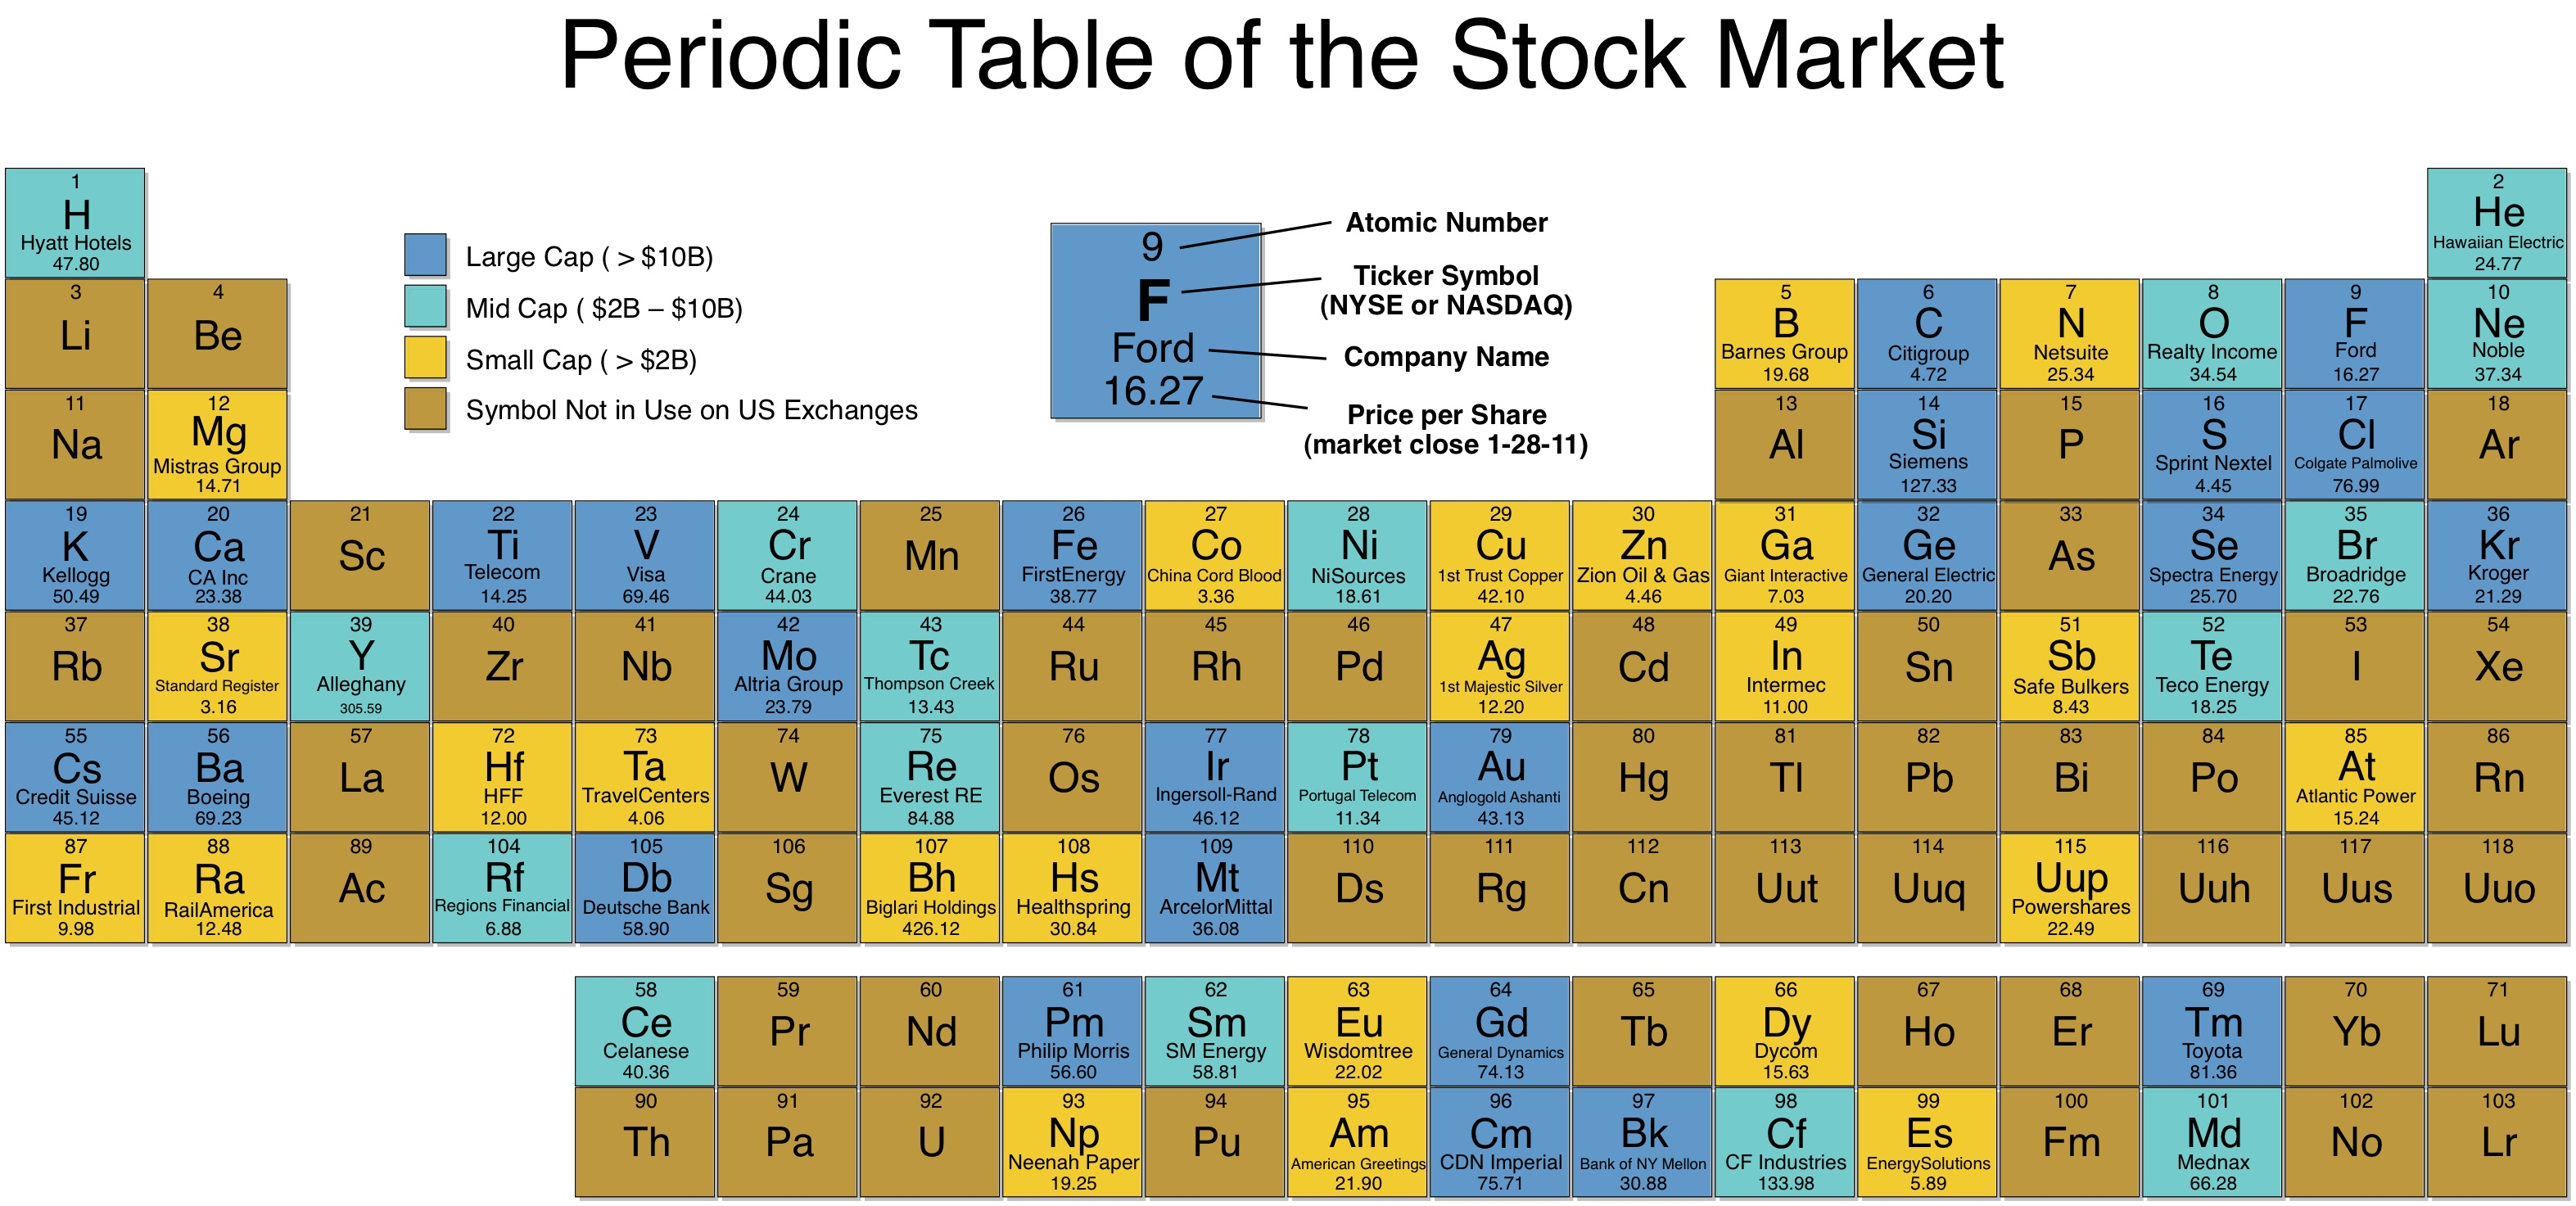 Periodic table of the stock market i can has science element symbols stock ticker symbols urtaz Gallery